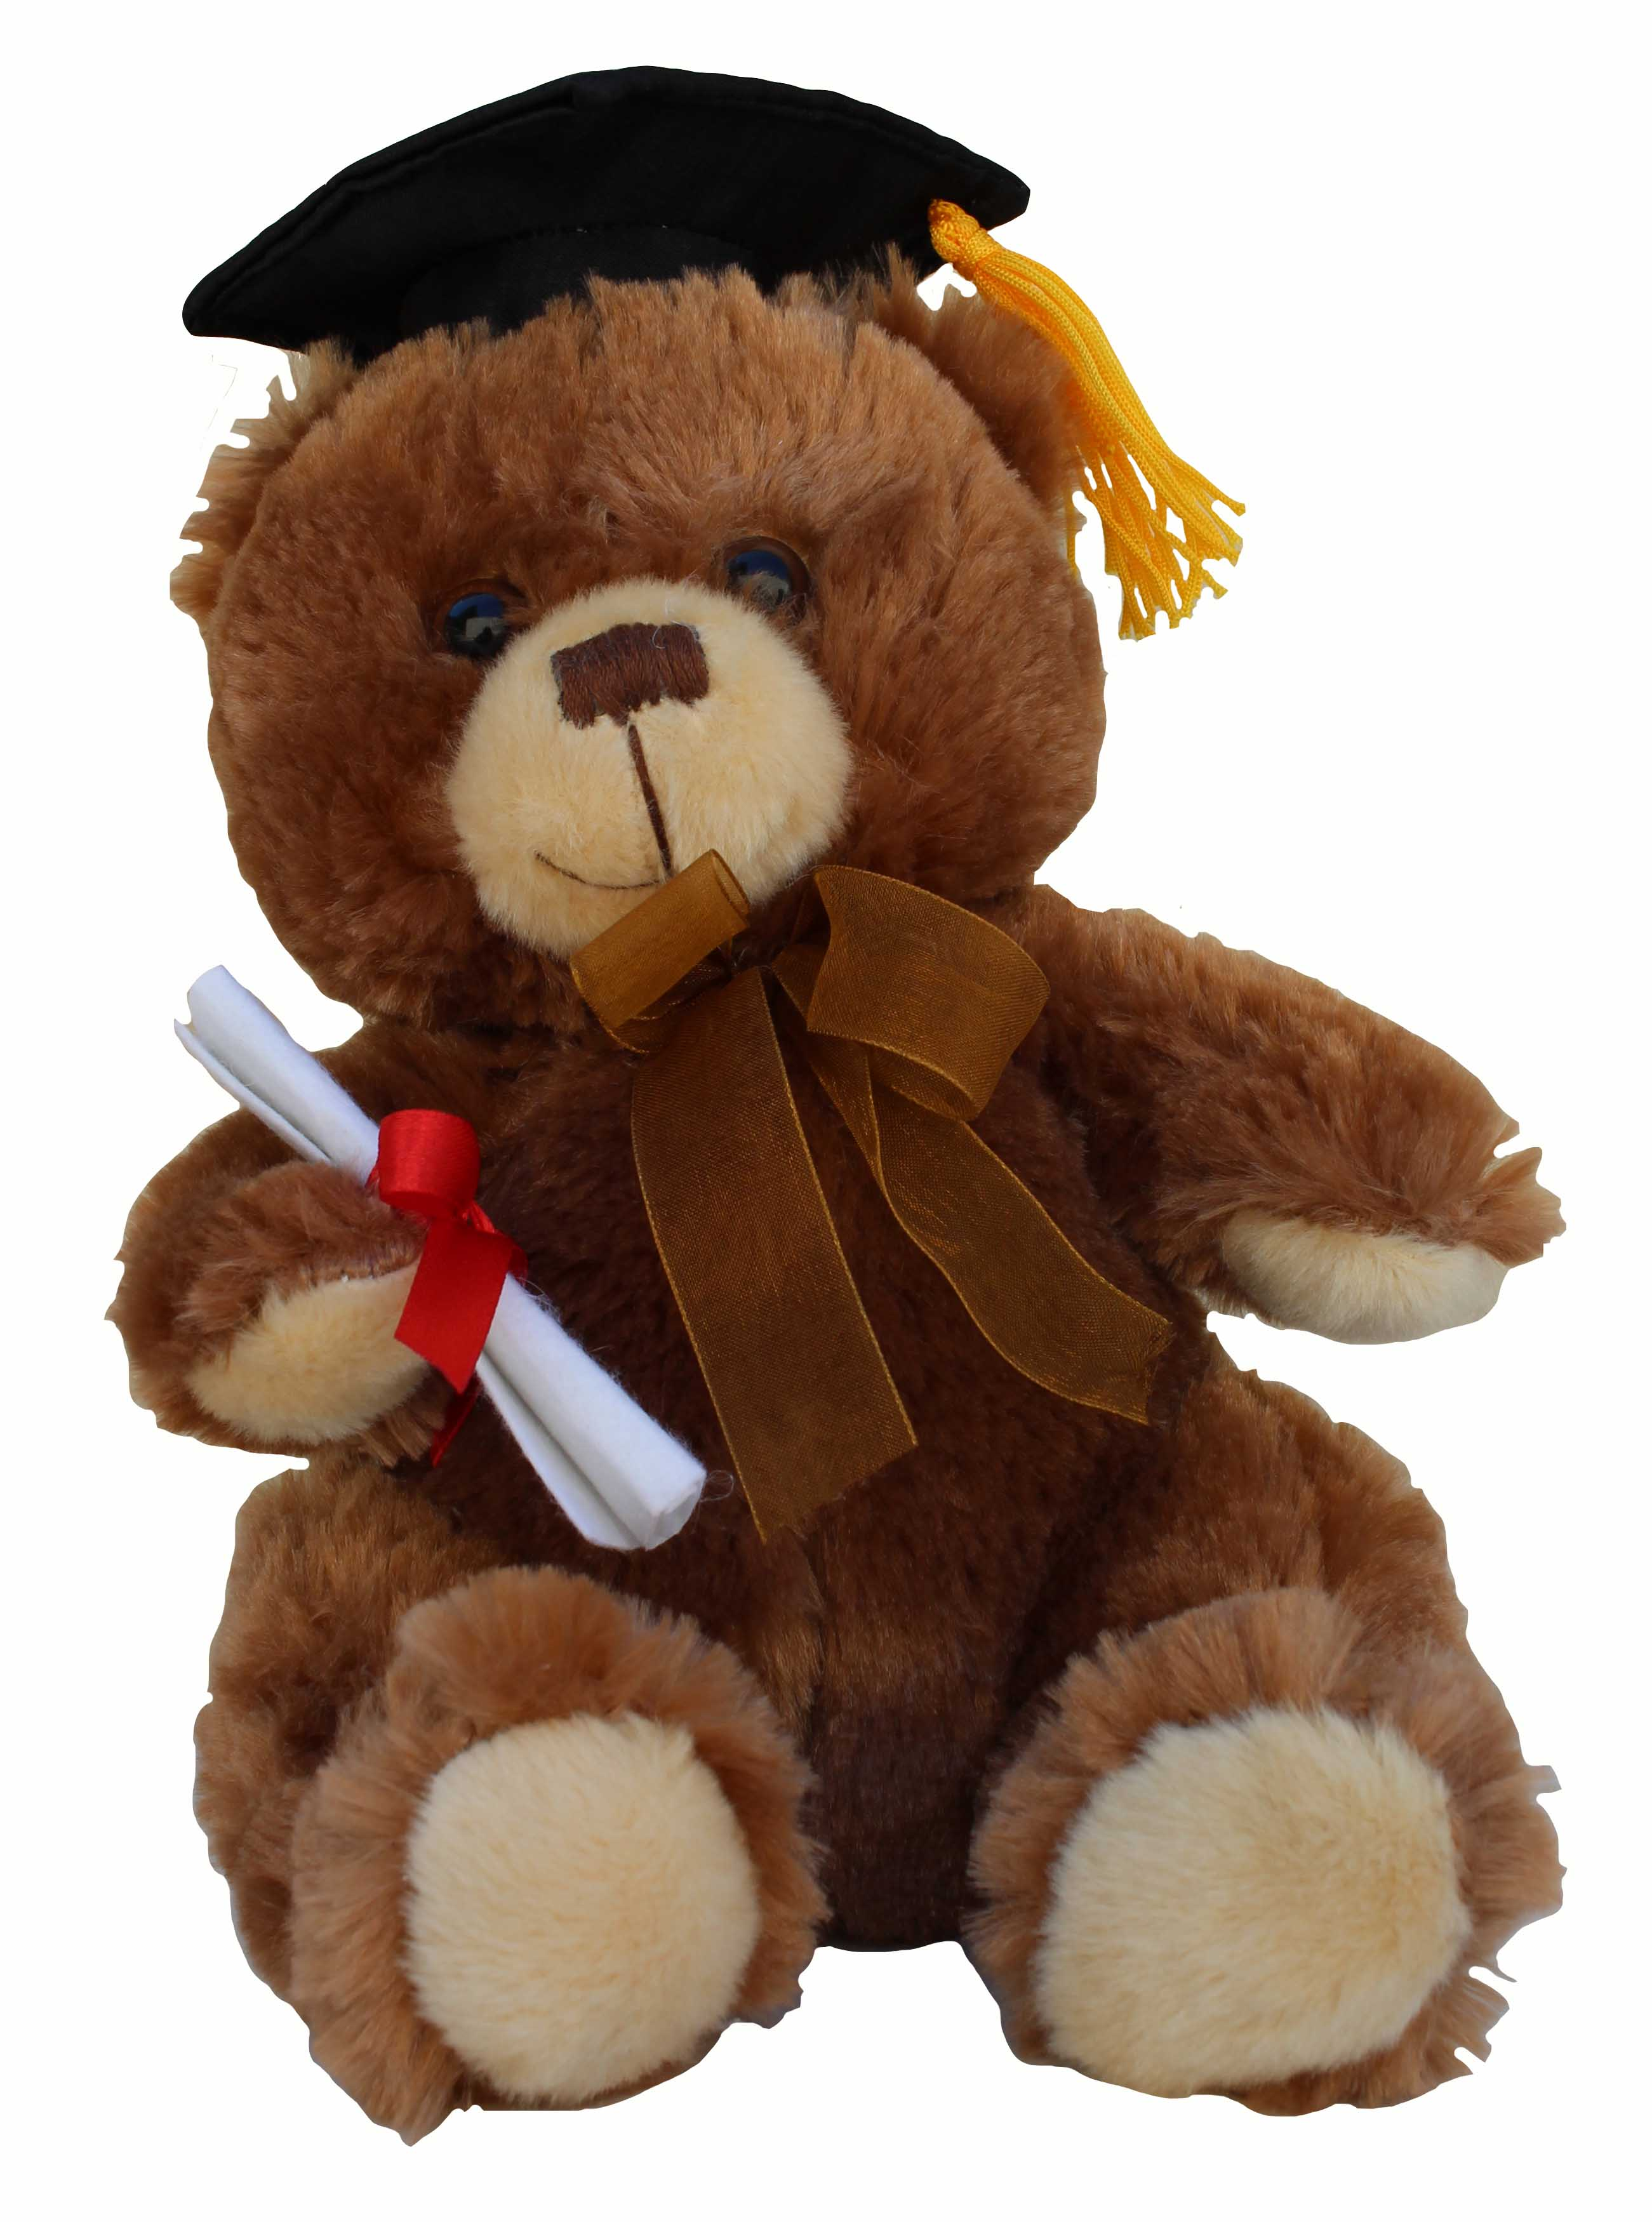 Image for the Grad Bear product